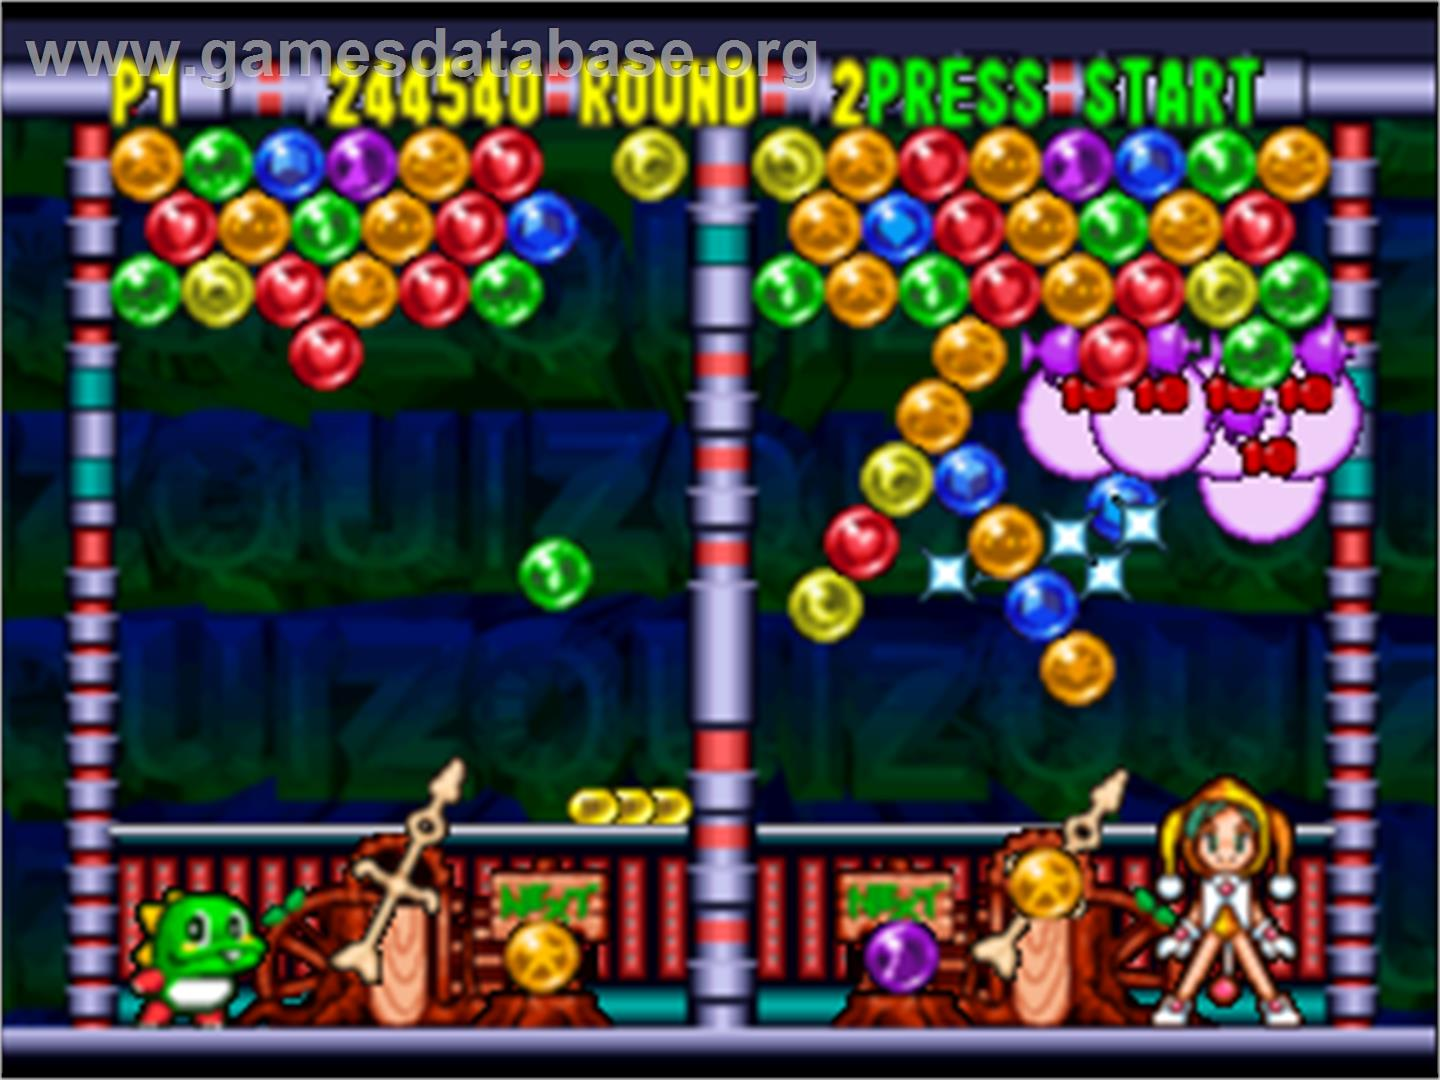 Puzzle Bobble 64 - Nintendo N64 - Artwork - In Game